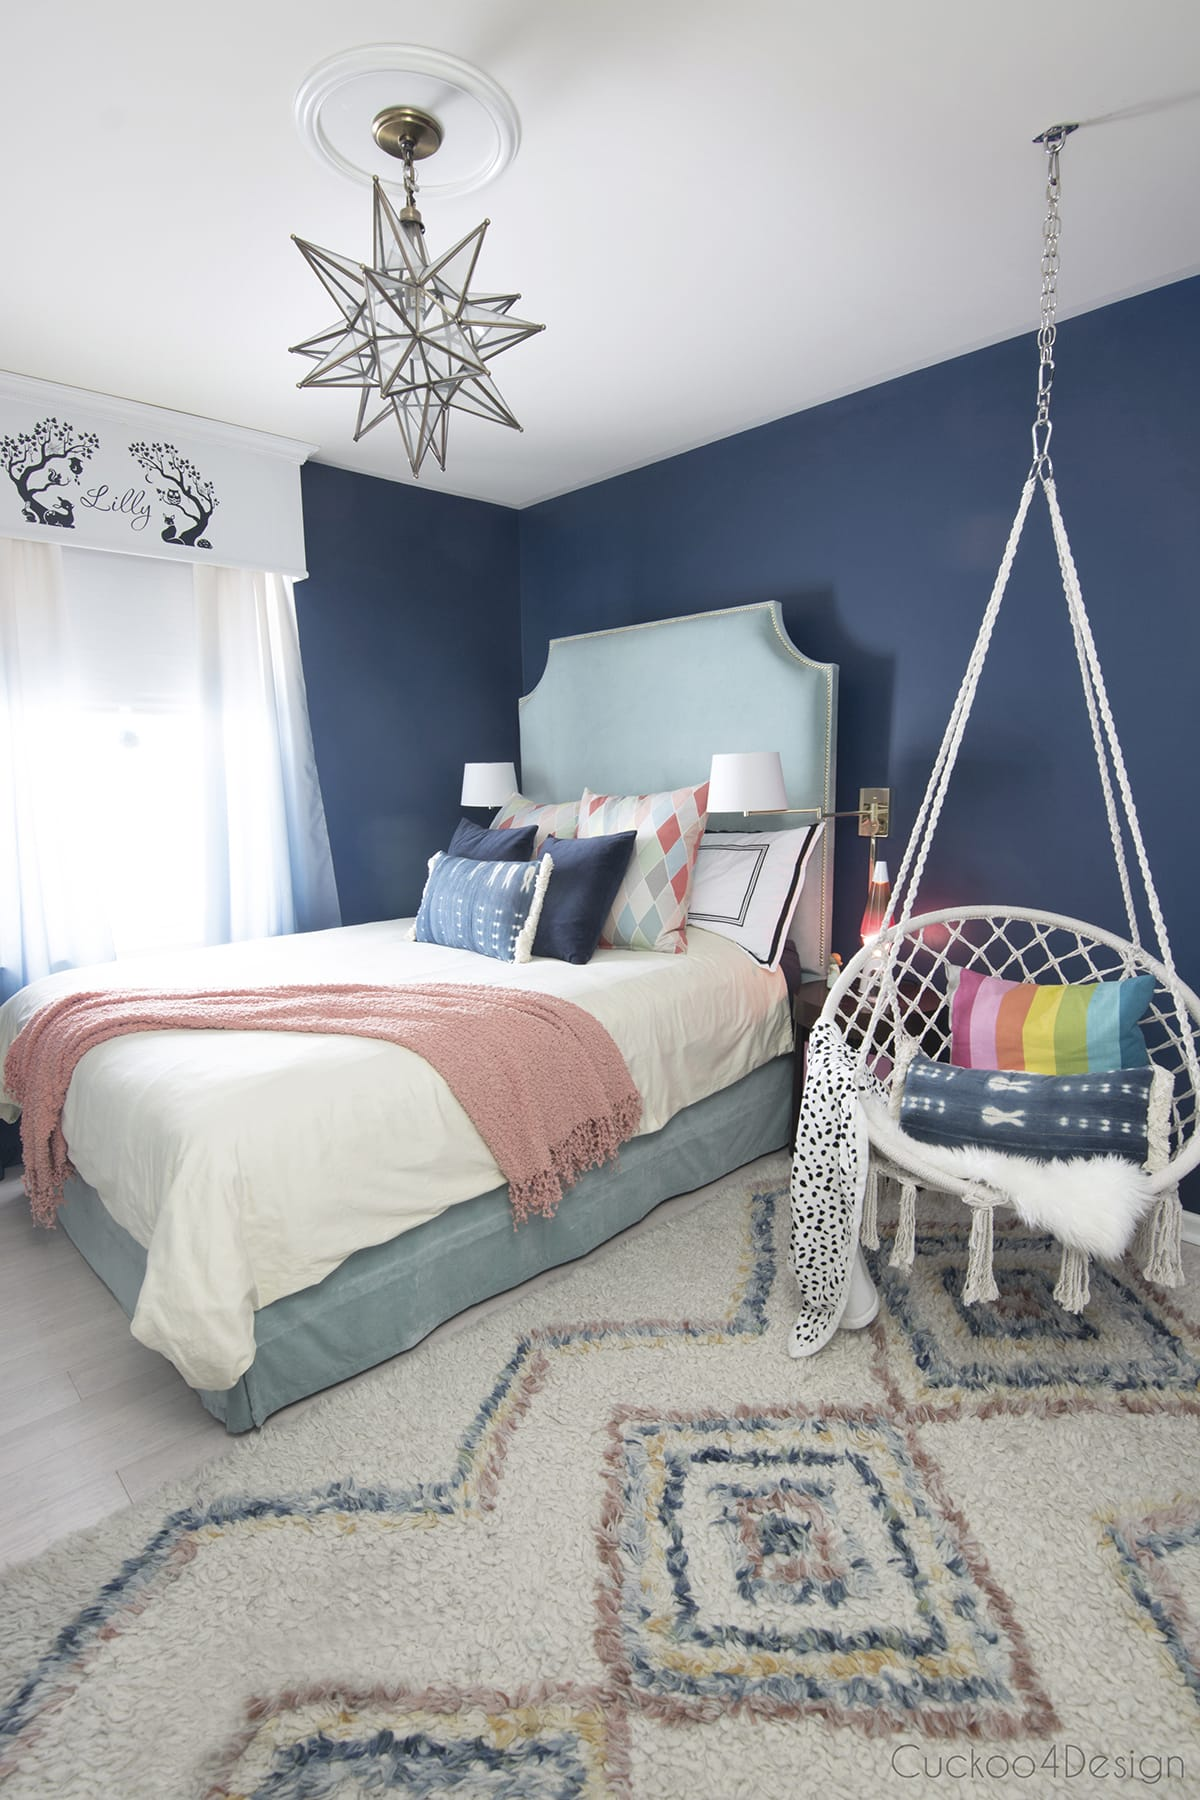 dark blue girls bedroom with turquoise DIY fabric headboard, hanging chair and colorful moroccan rug